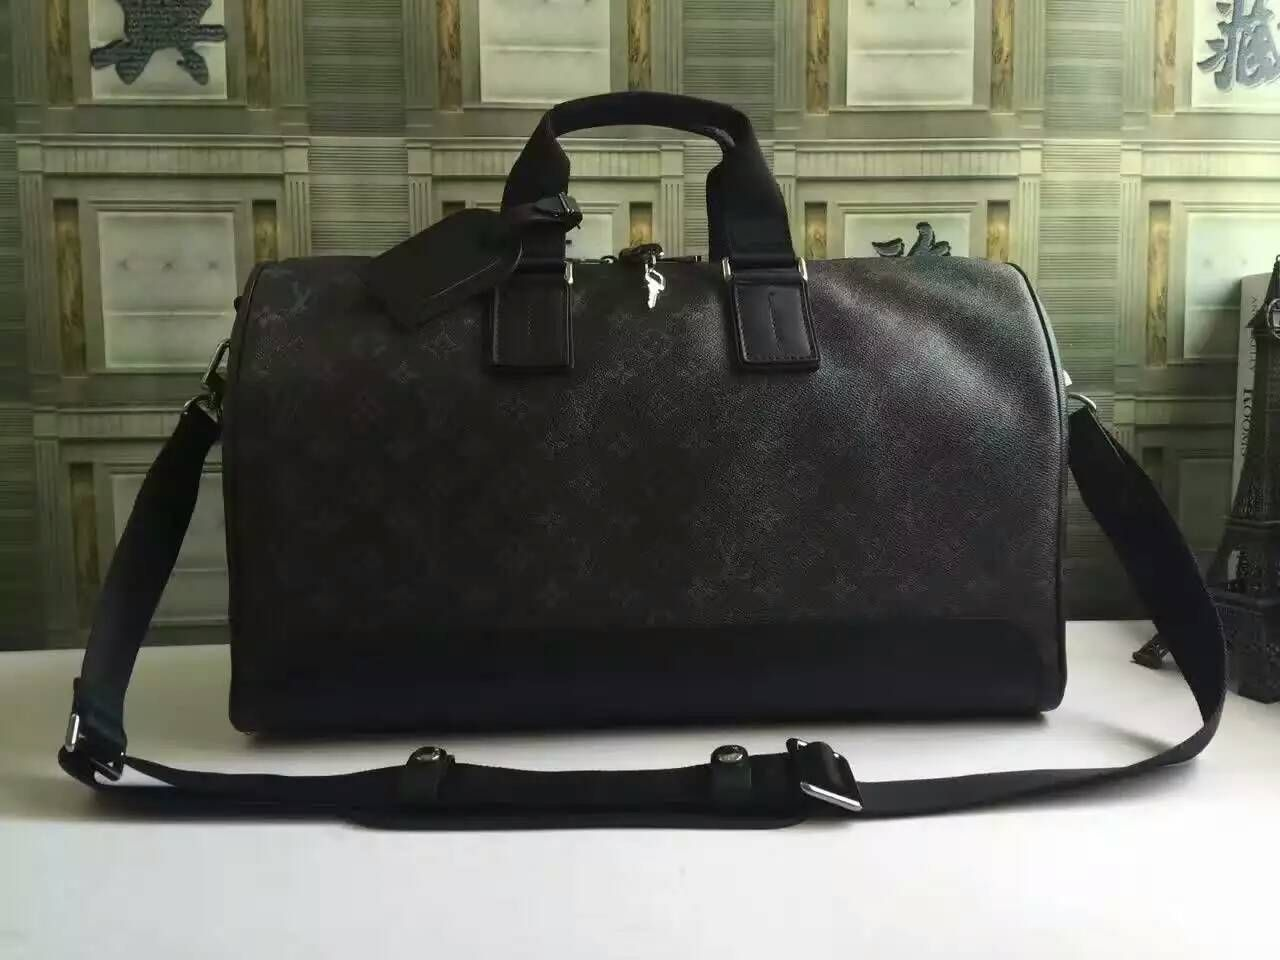 95e887f41 LV Keepall Voyager Designer weekender bag in monogram eclipse canvas M43038  size:45x27x20CM G4 whatsapp:+8615503787453